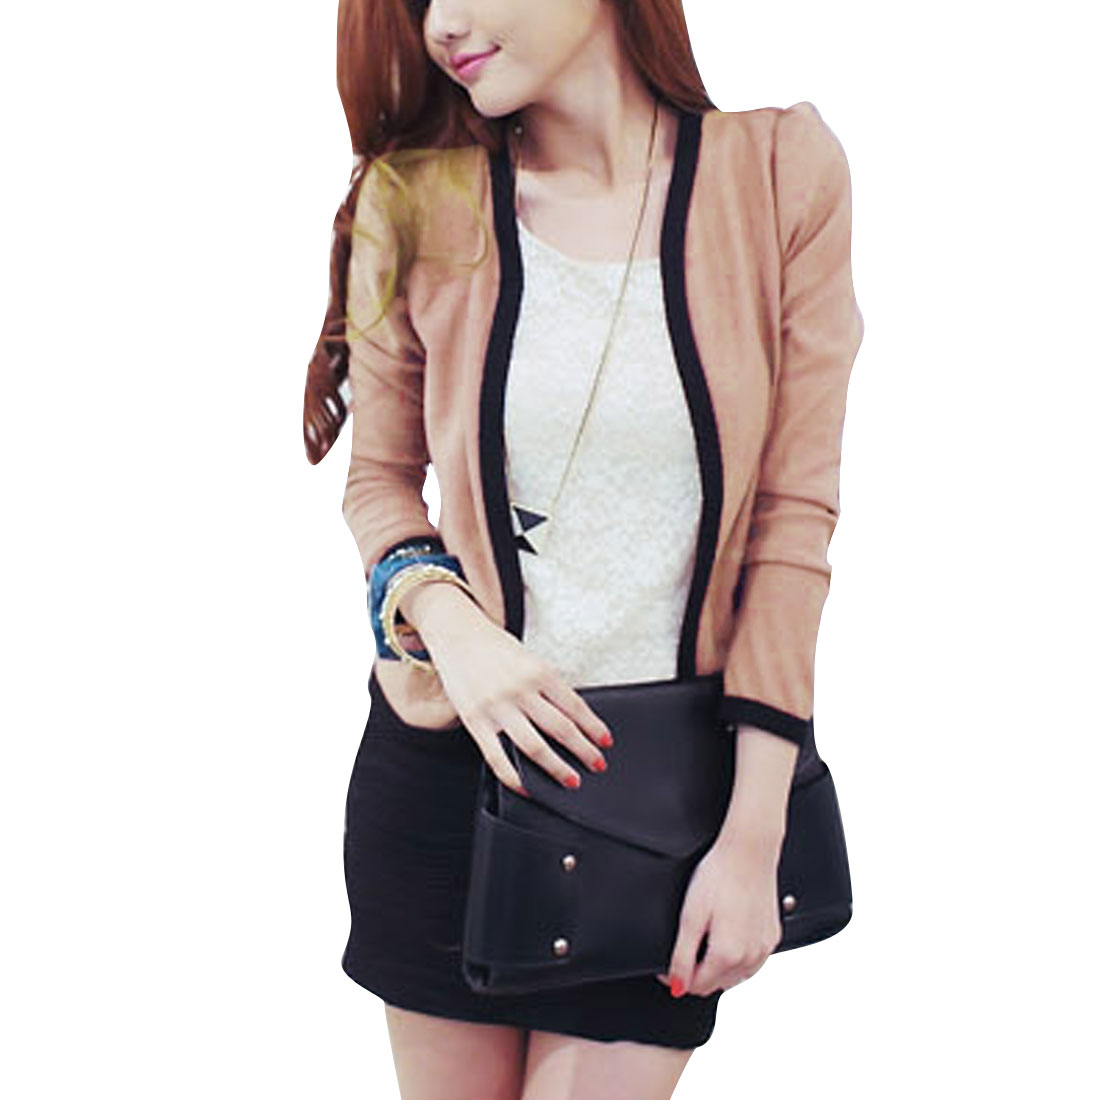 Women's Front Opening Stylish Long Puff Sleeves Pale Pink S Blazer Jacket